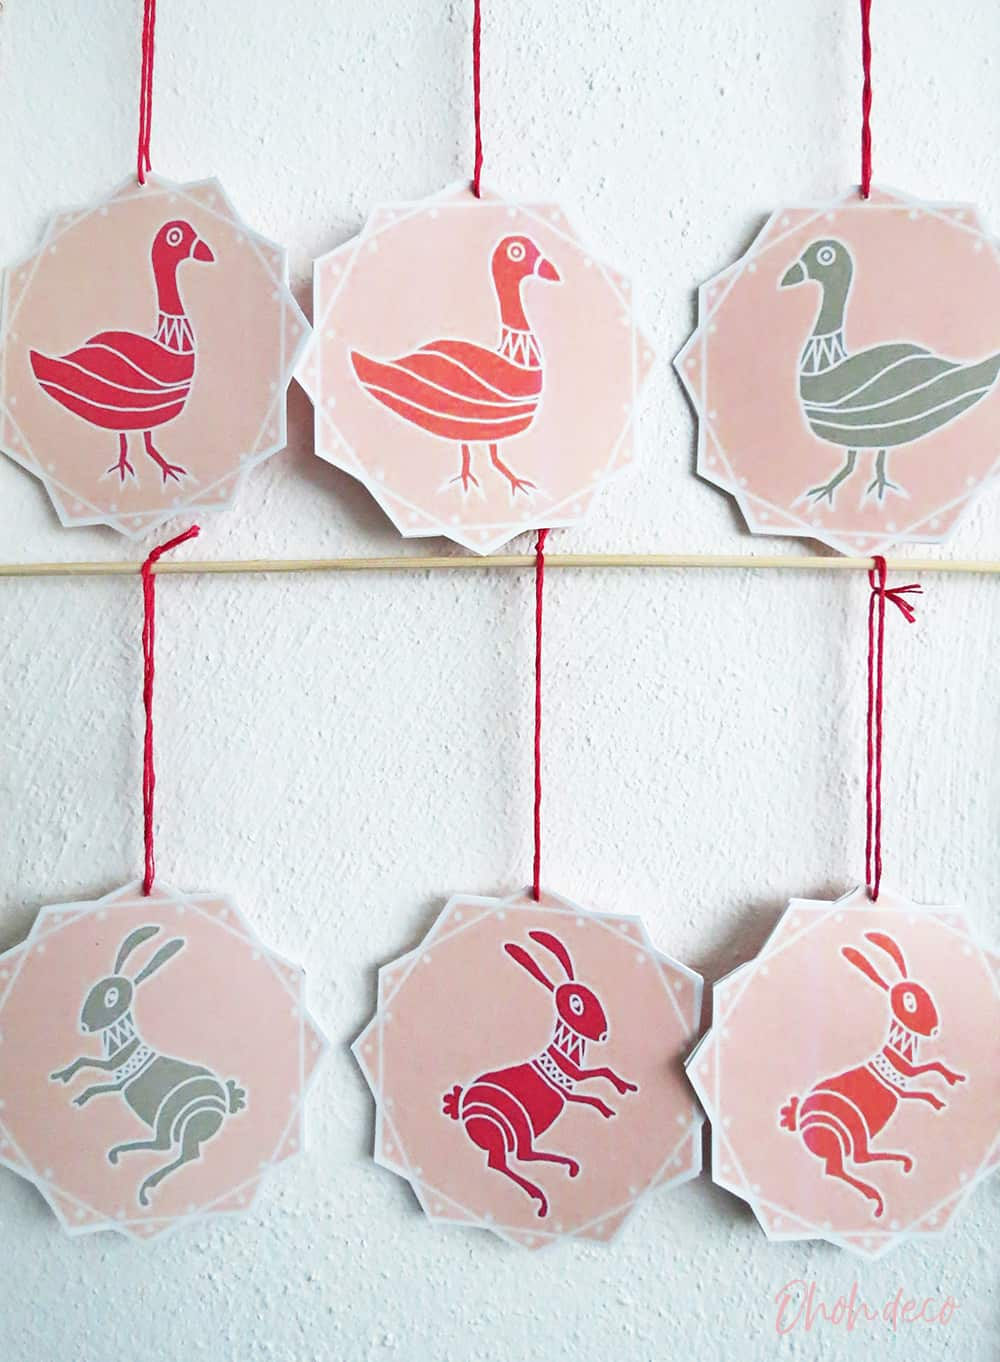 DIY printed paper Christmas ornaments